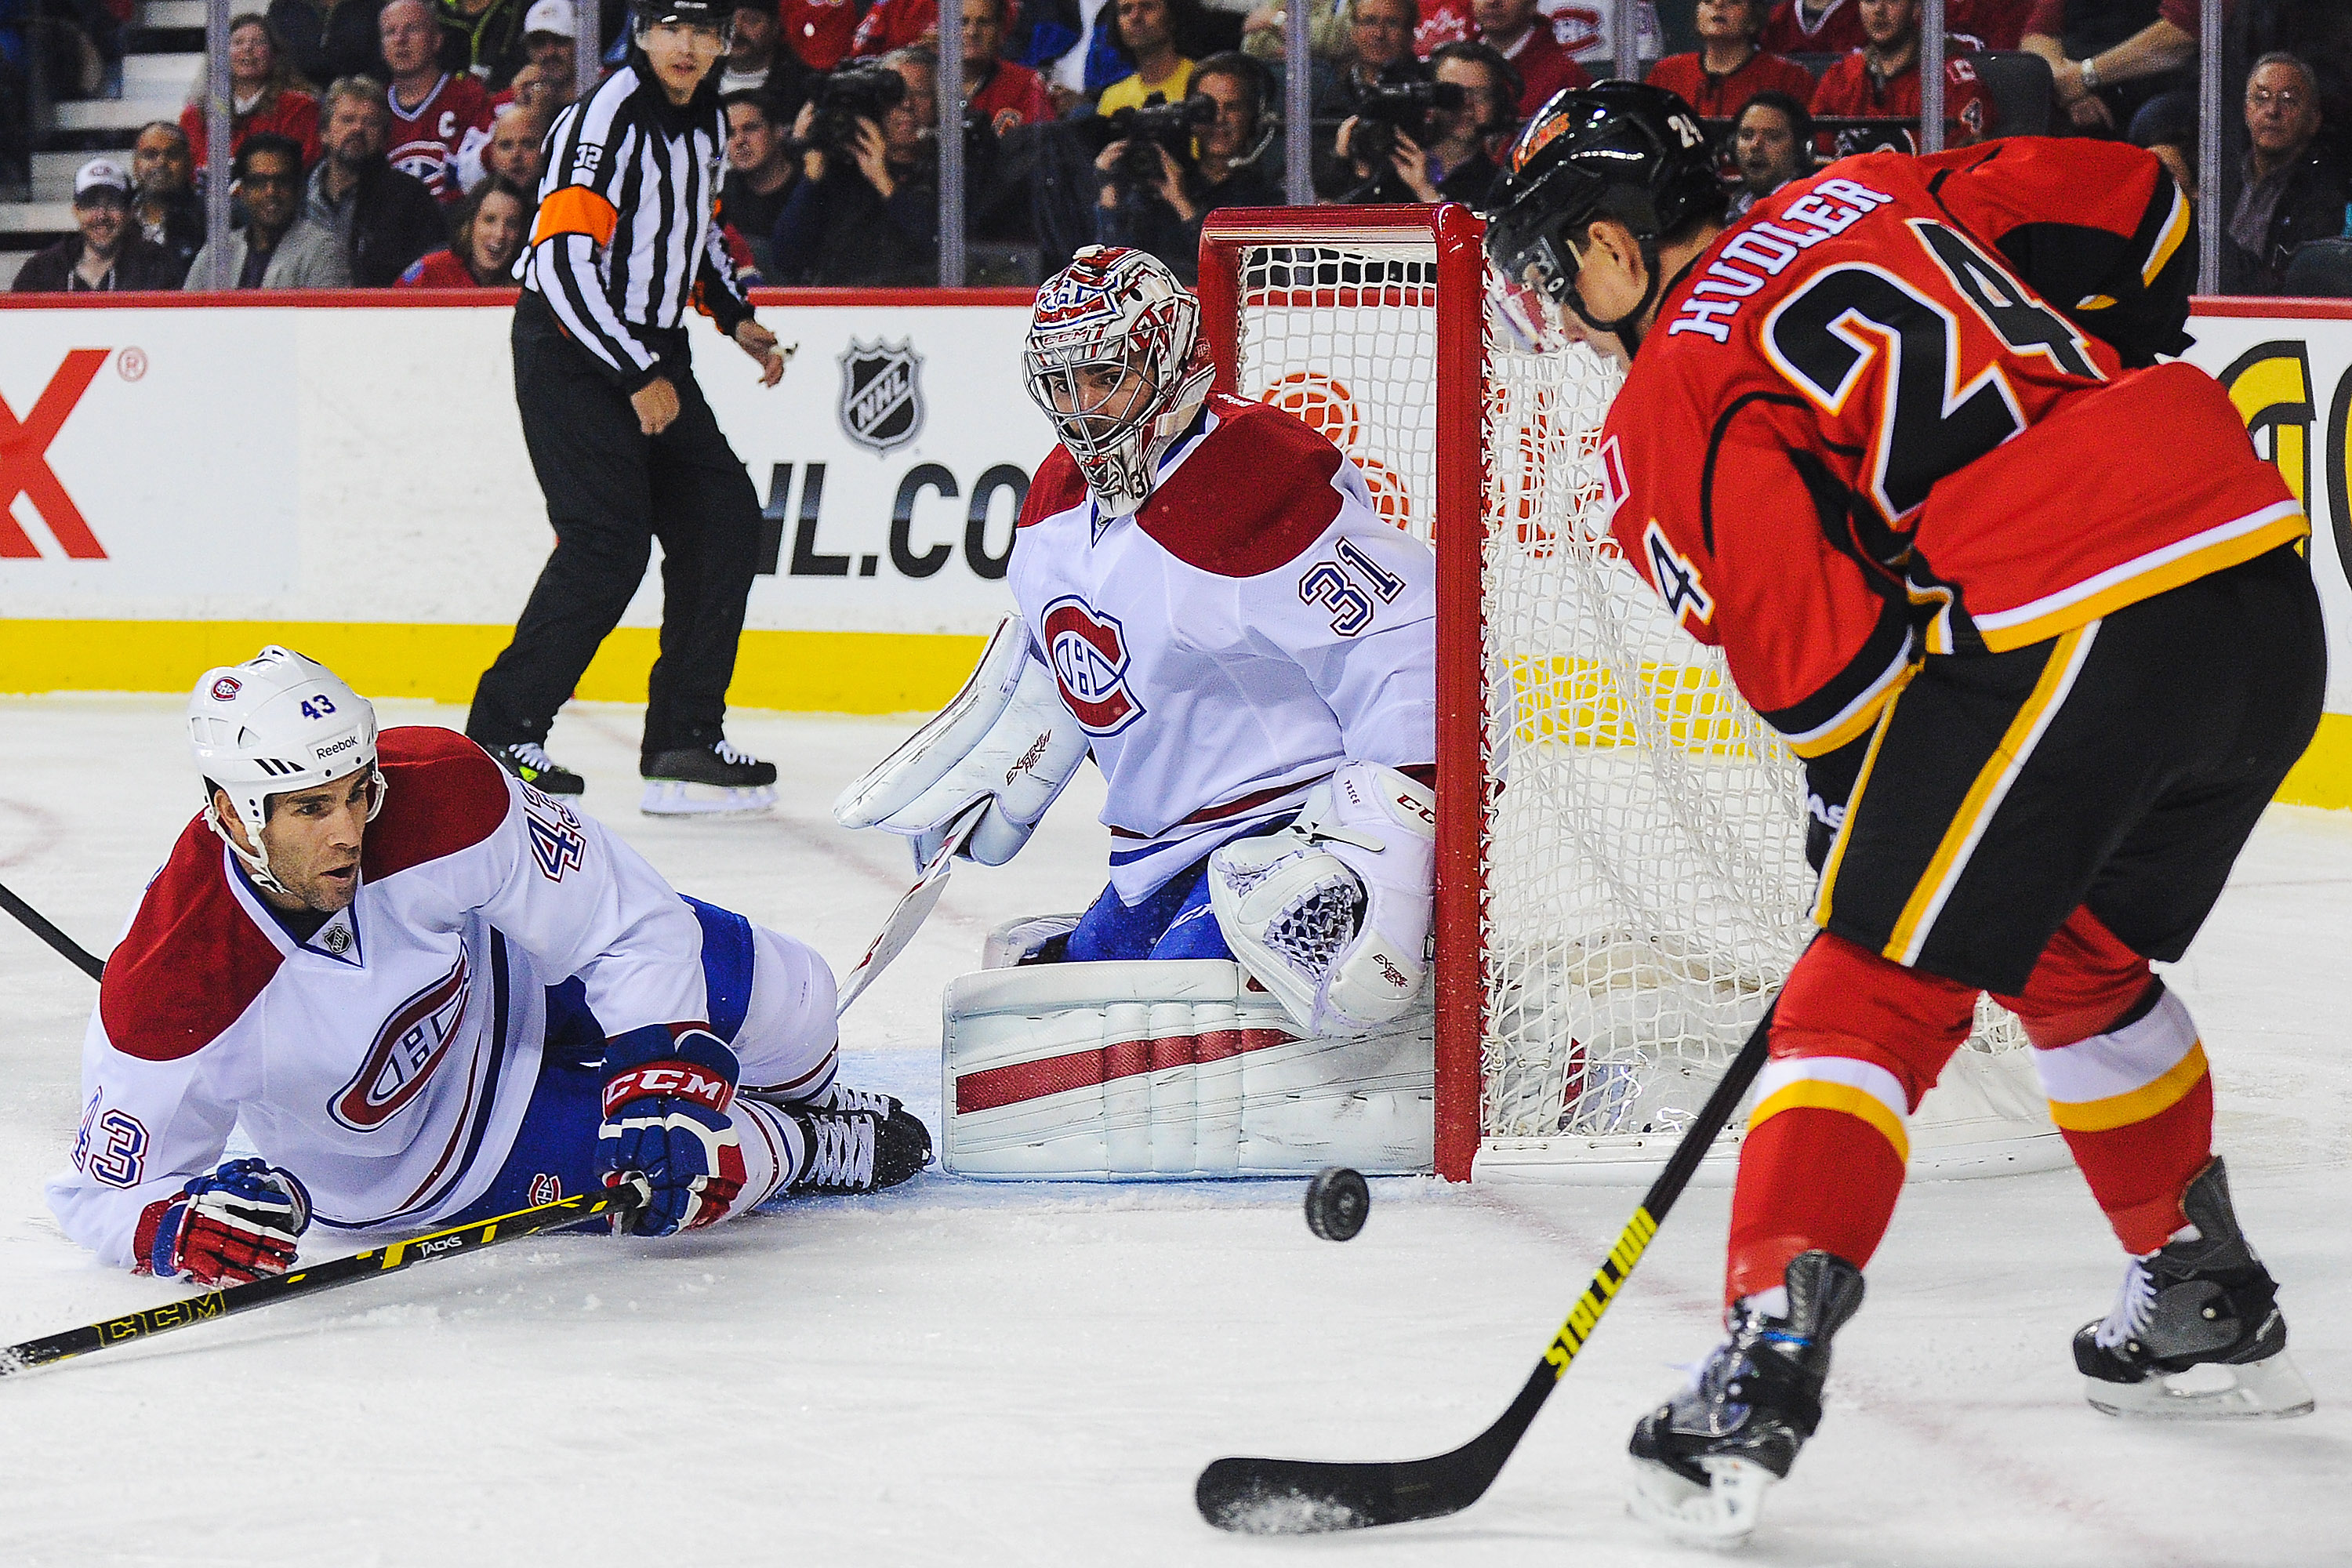 CALGARY, AB - OCTOBER 28: Jiri Hudler #24 of the Calgary Flames takes a shot as Mike Weaver #43 (L) and Carey Price #31 of the Montreal Canadiens defend during an NHL game at Scotiabank Saddledome on October 28, 2014 in Calgary, Alberta, Canada. (Photo by Derek Leung/Getty Images)